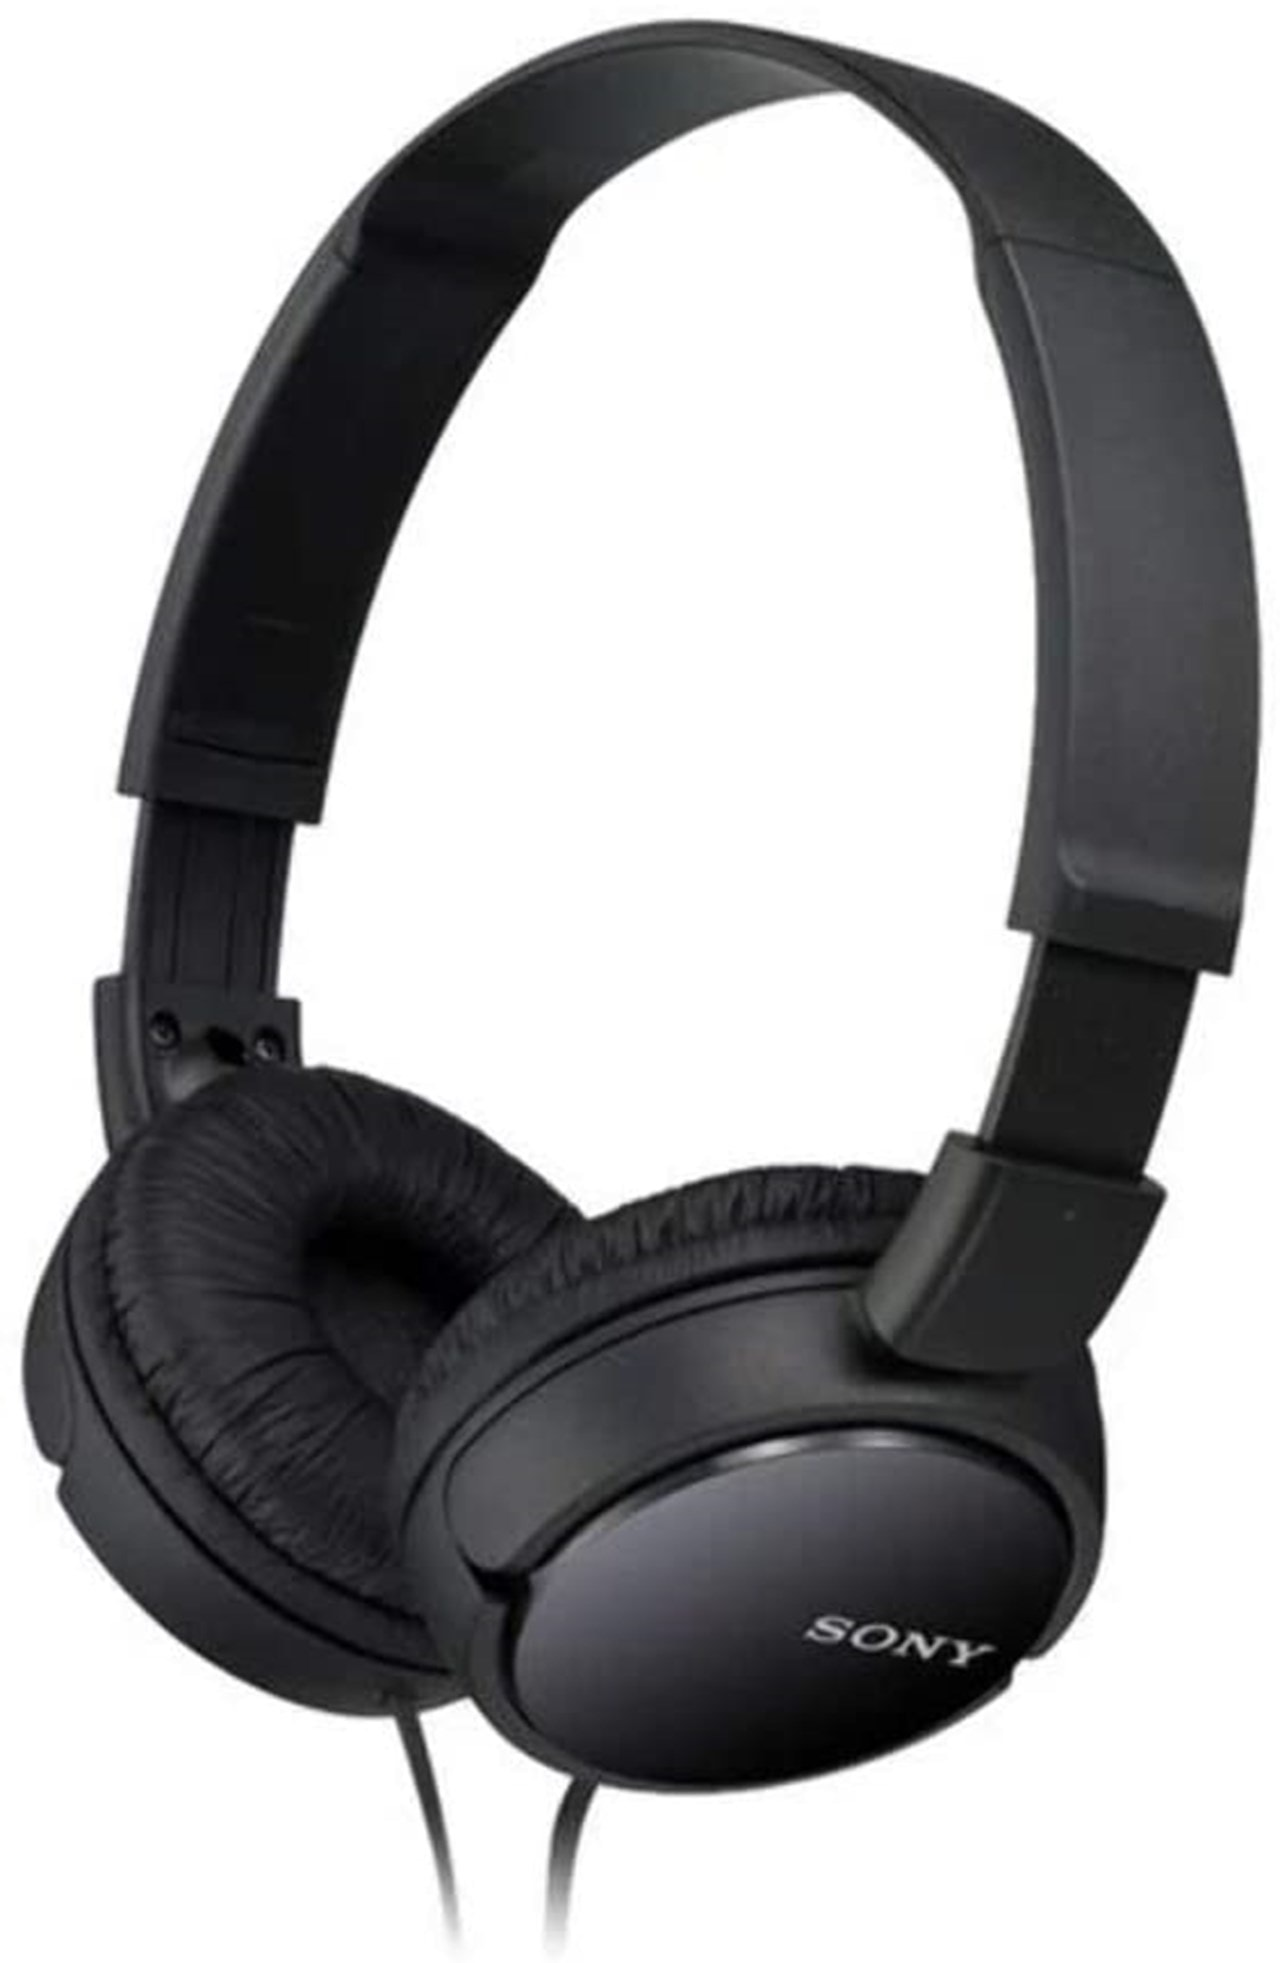 Sony MDRZX110 Black Headphones - 1